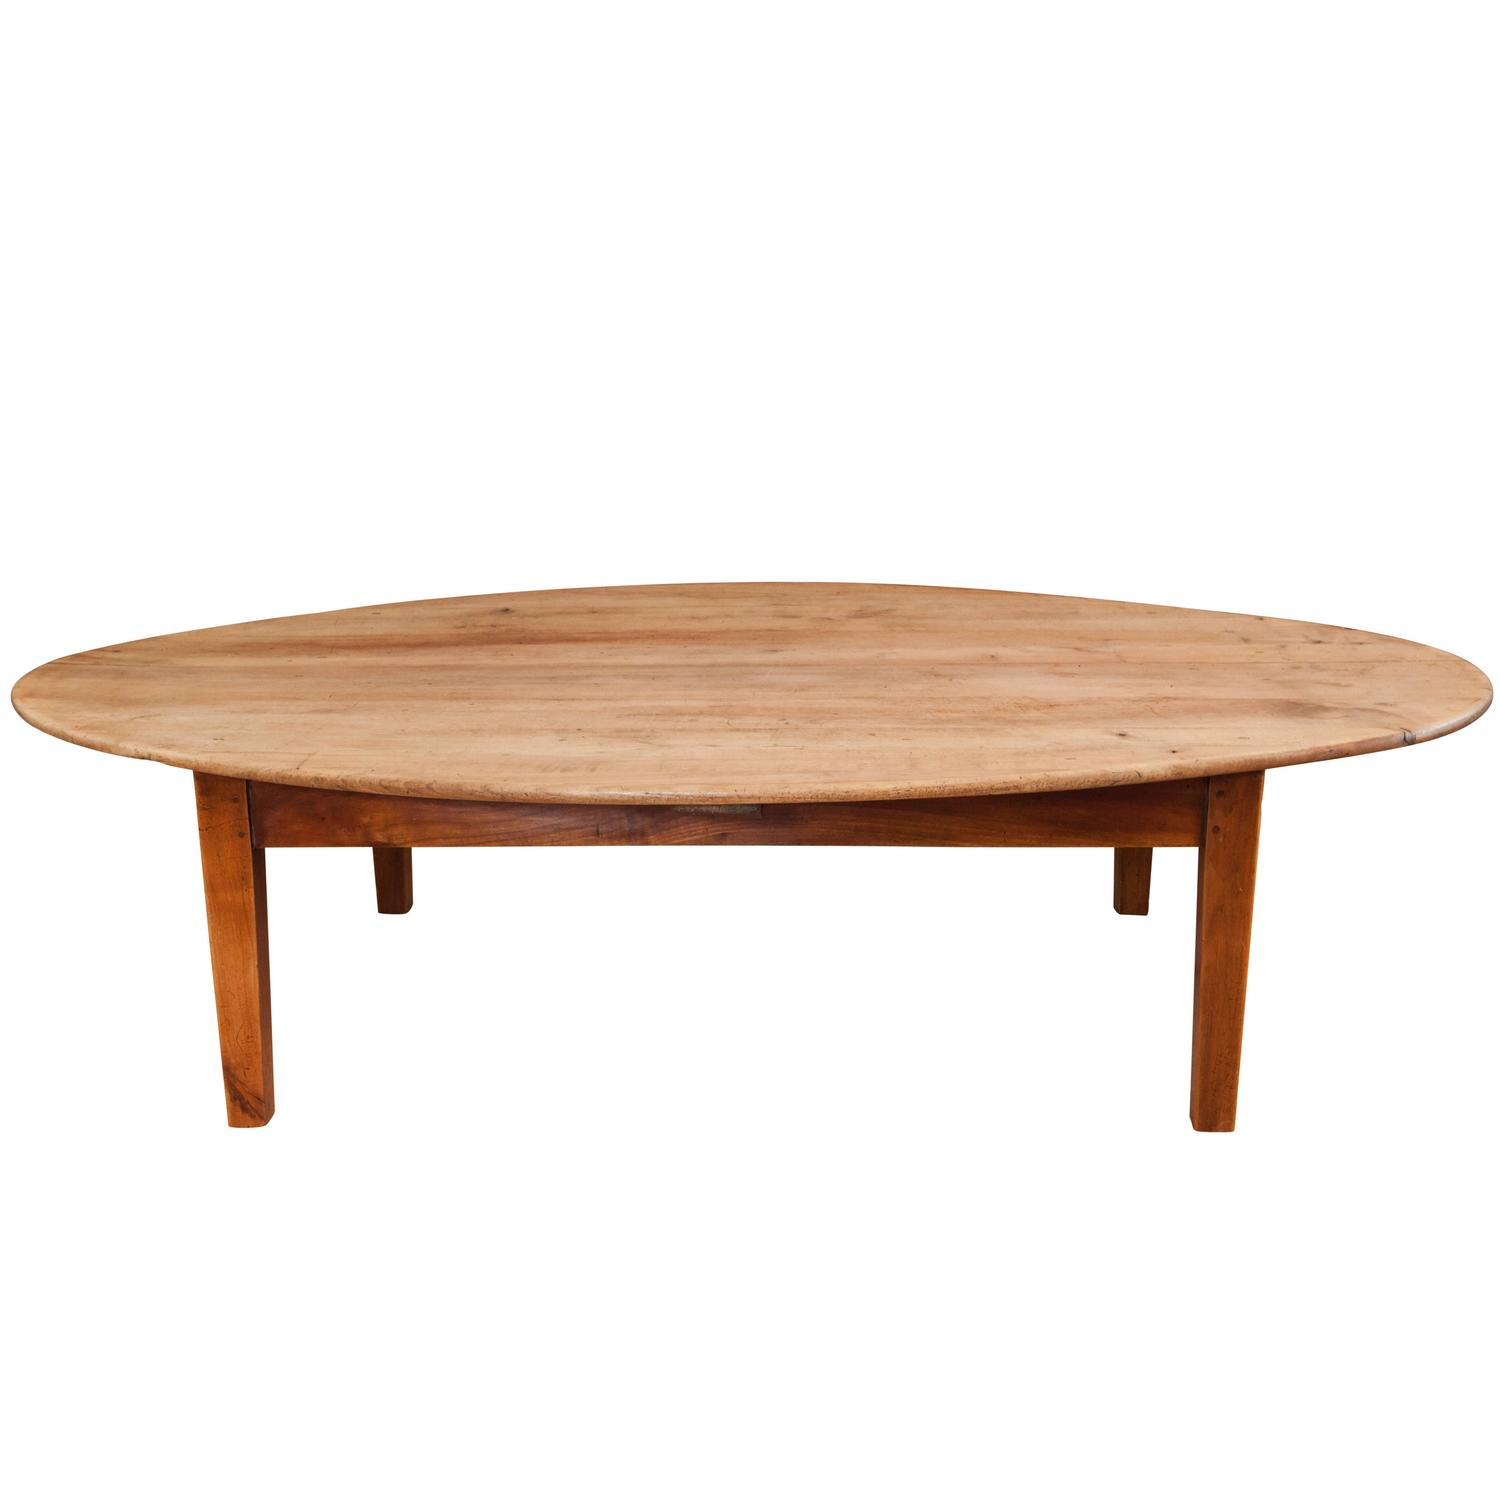 French Country Coffee Table And End Tables: French Country Table As Coffee Table For Sale At 1stdibs